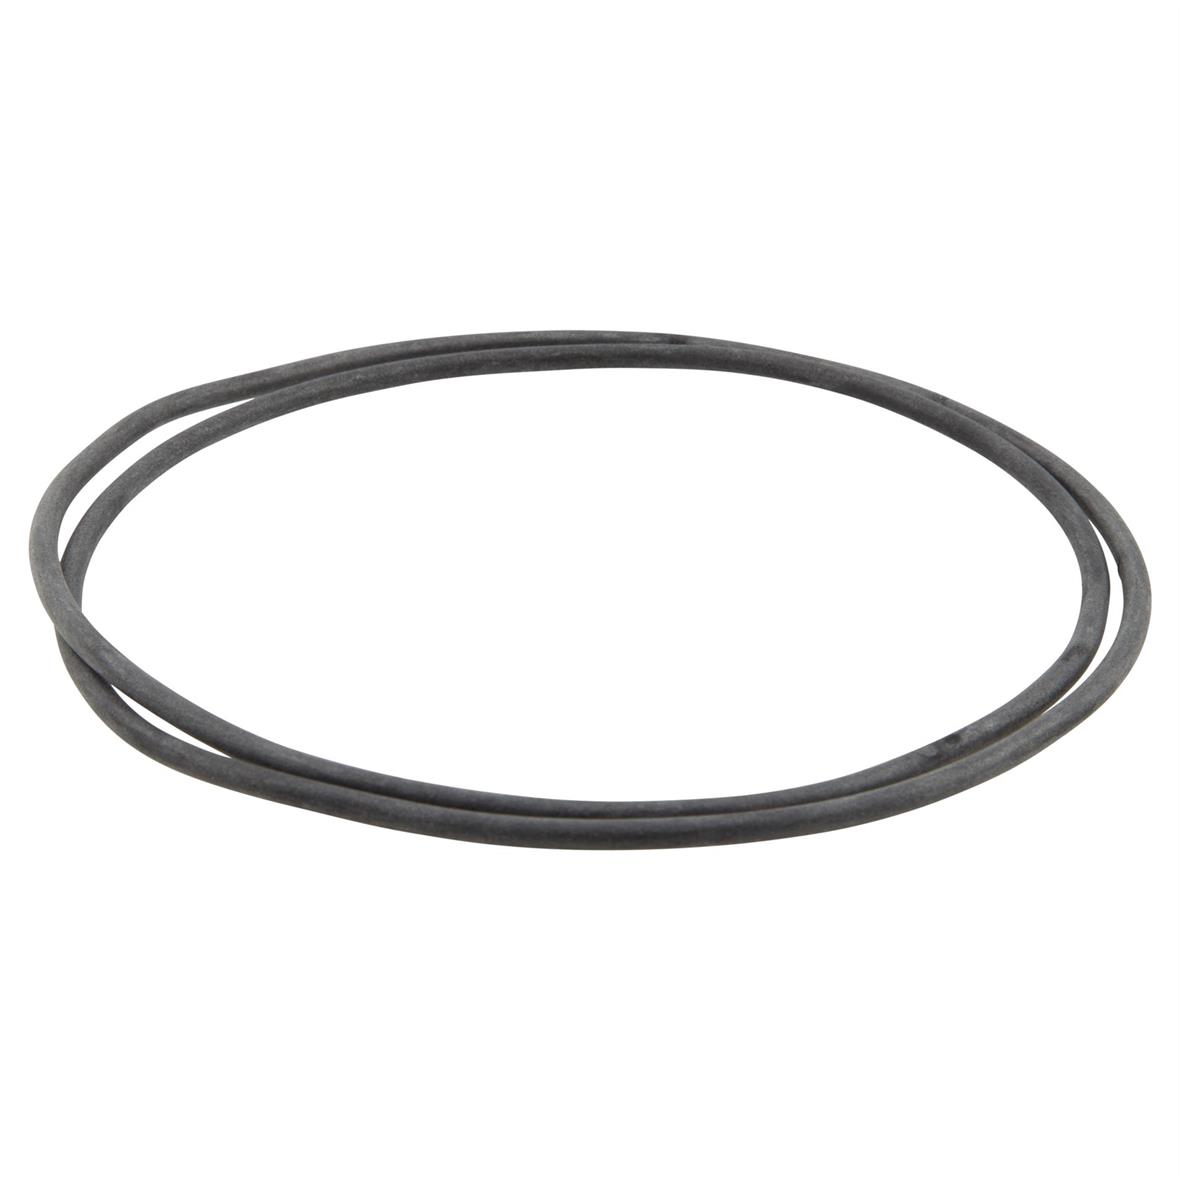 Product Image for 'Gasket PIAGGIO air filter boxTitle'